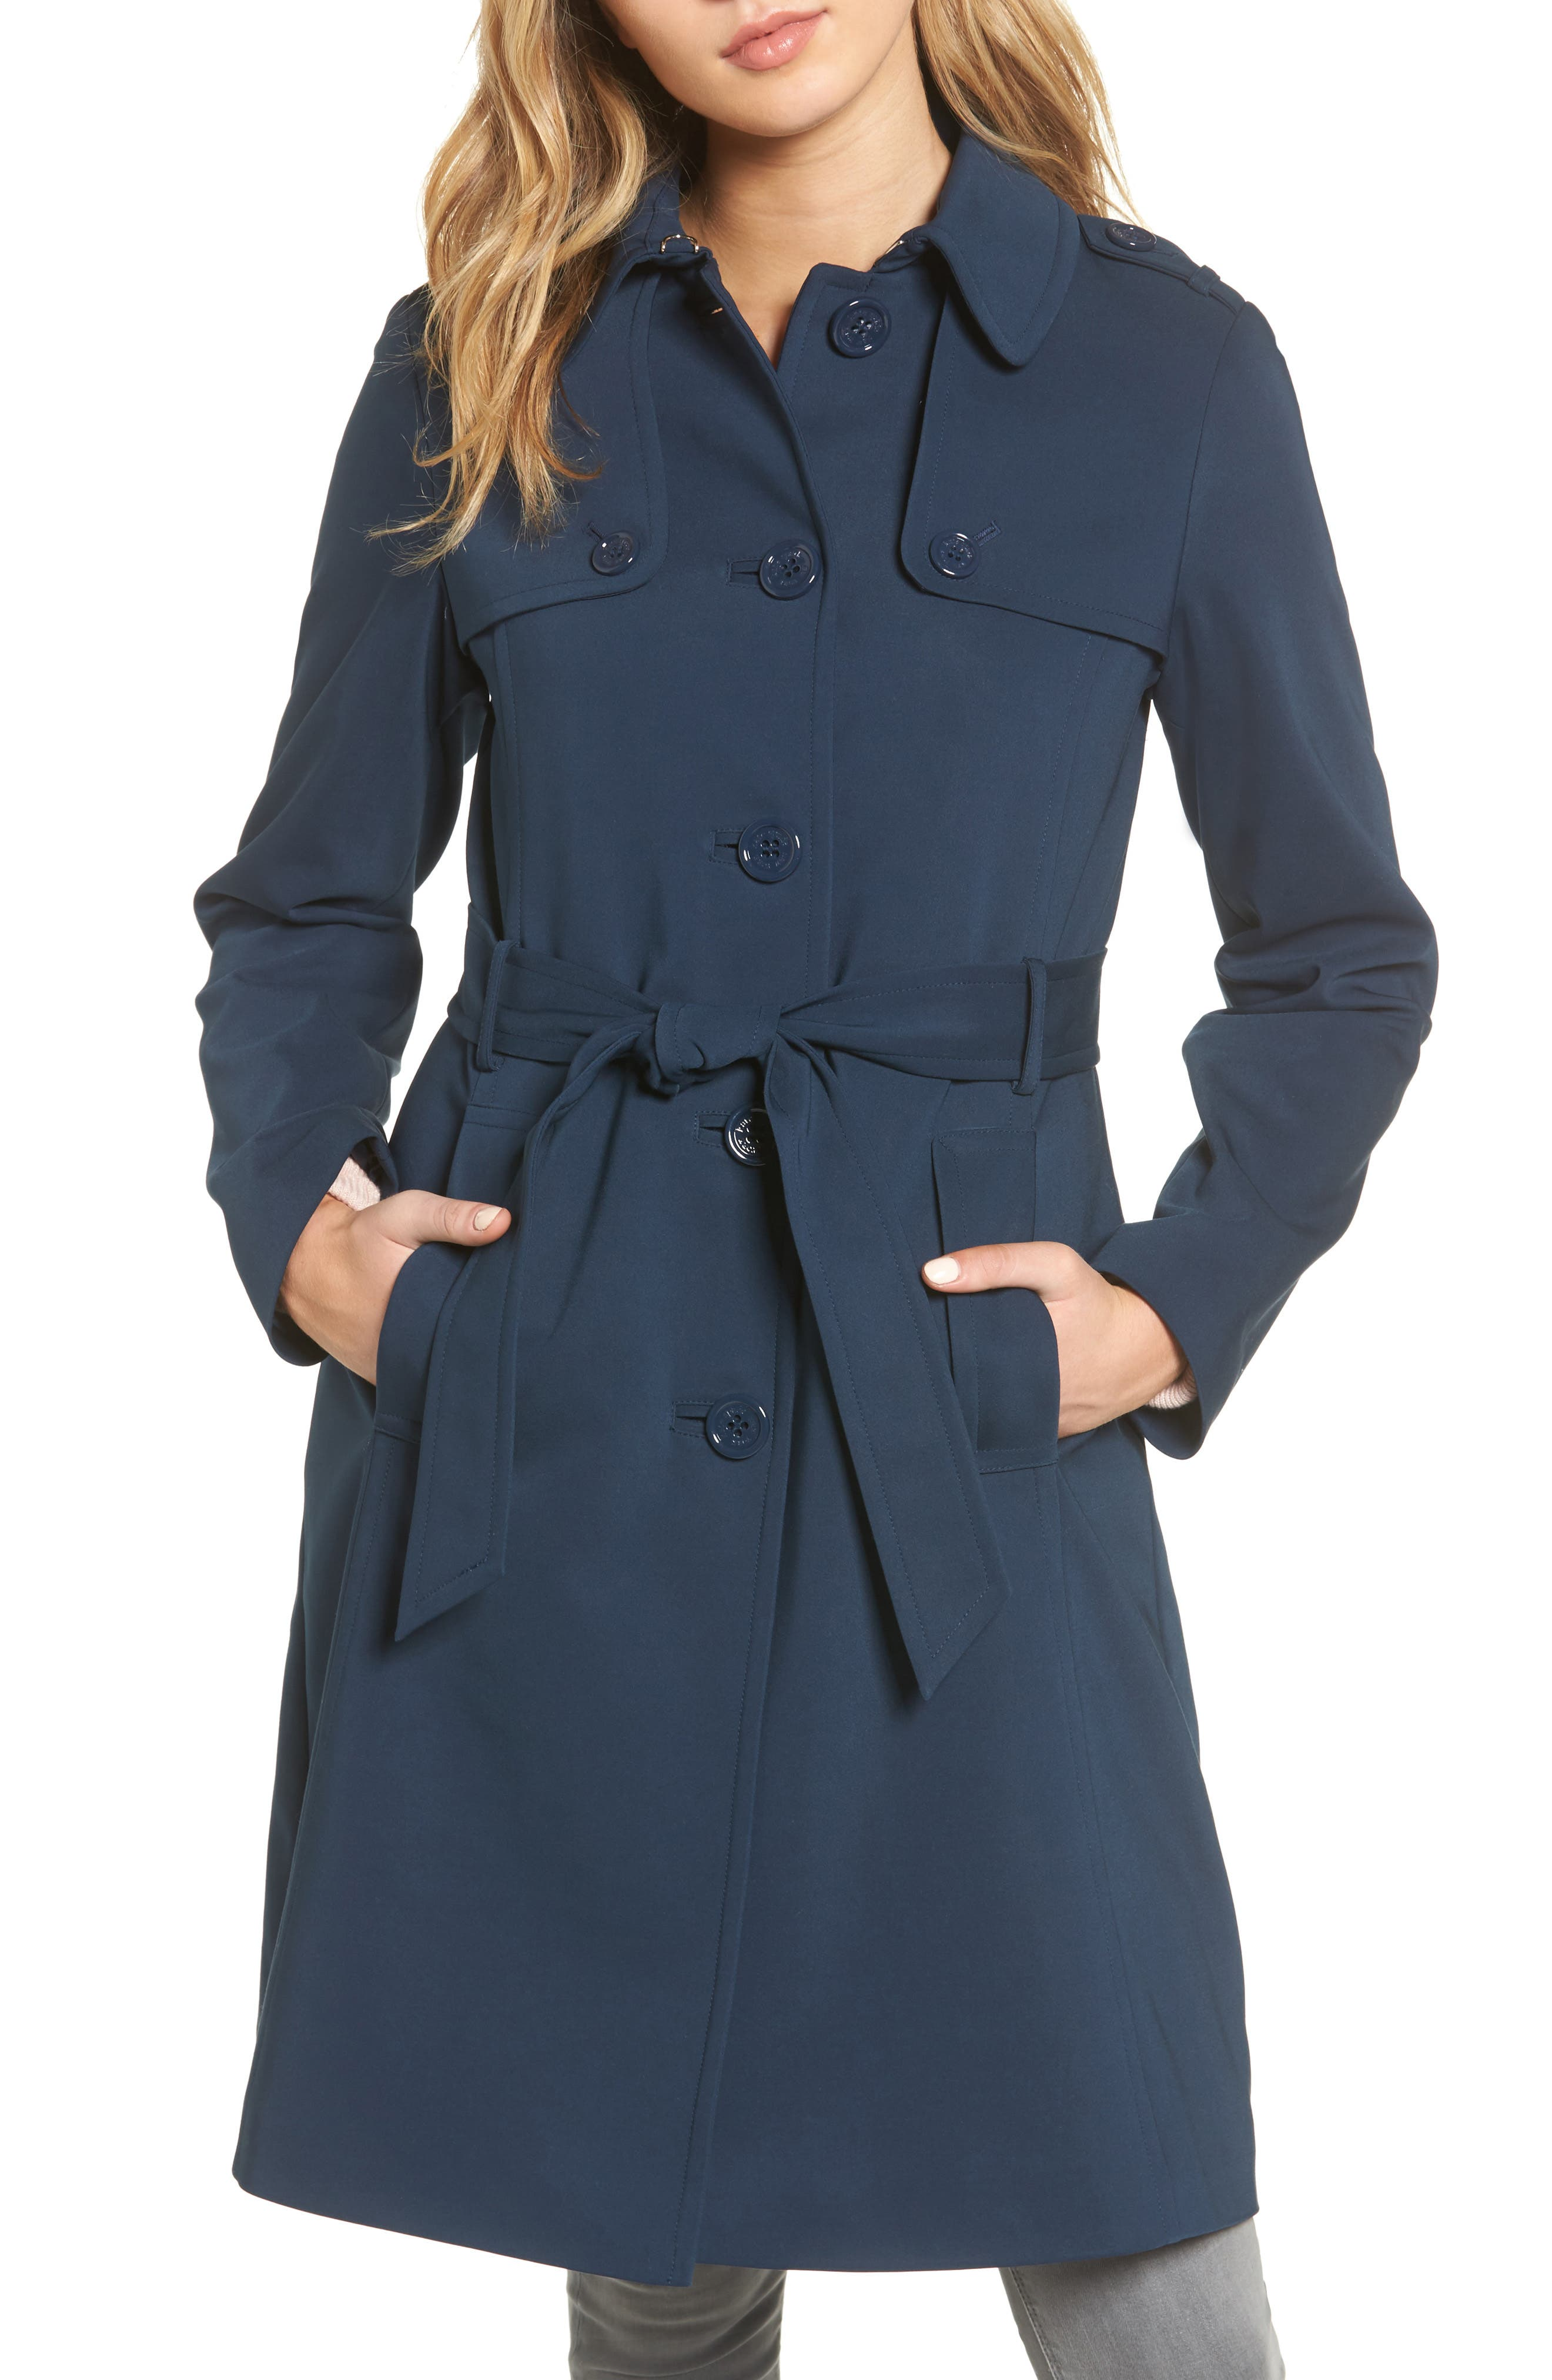 Main Image - kate spade new york 3-in-1 trench coat